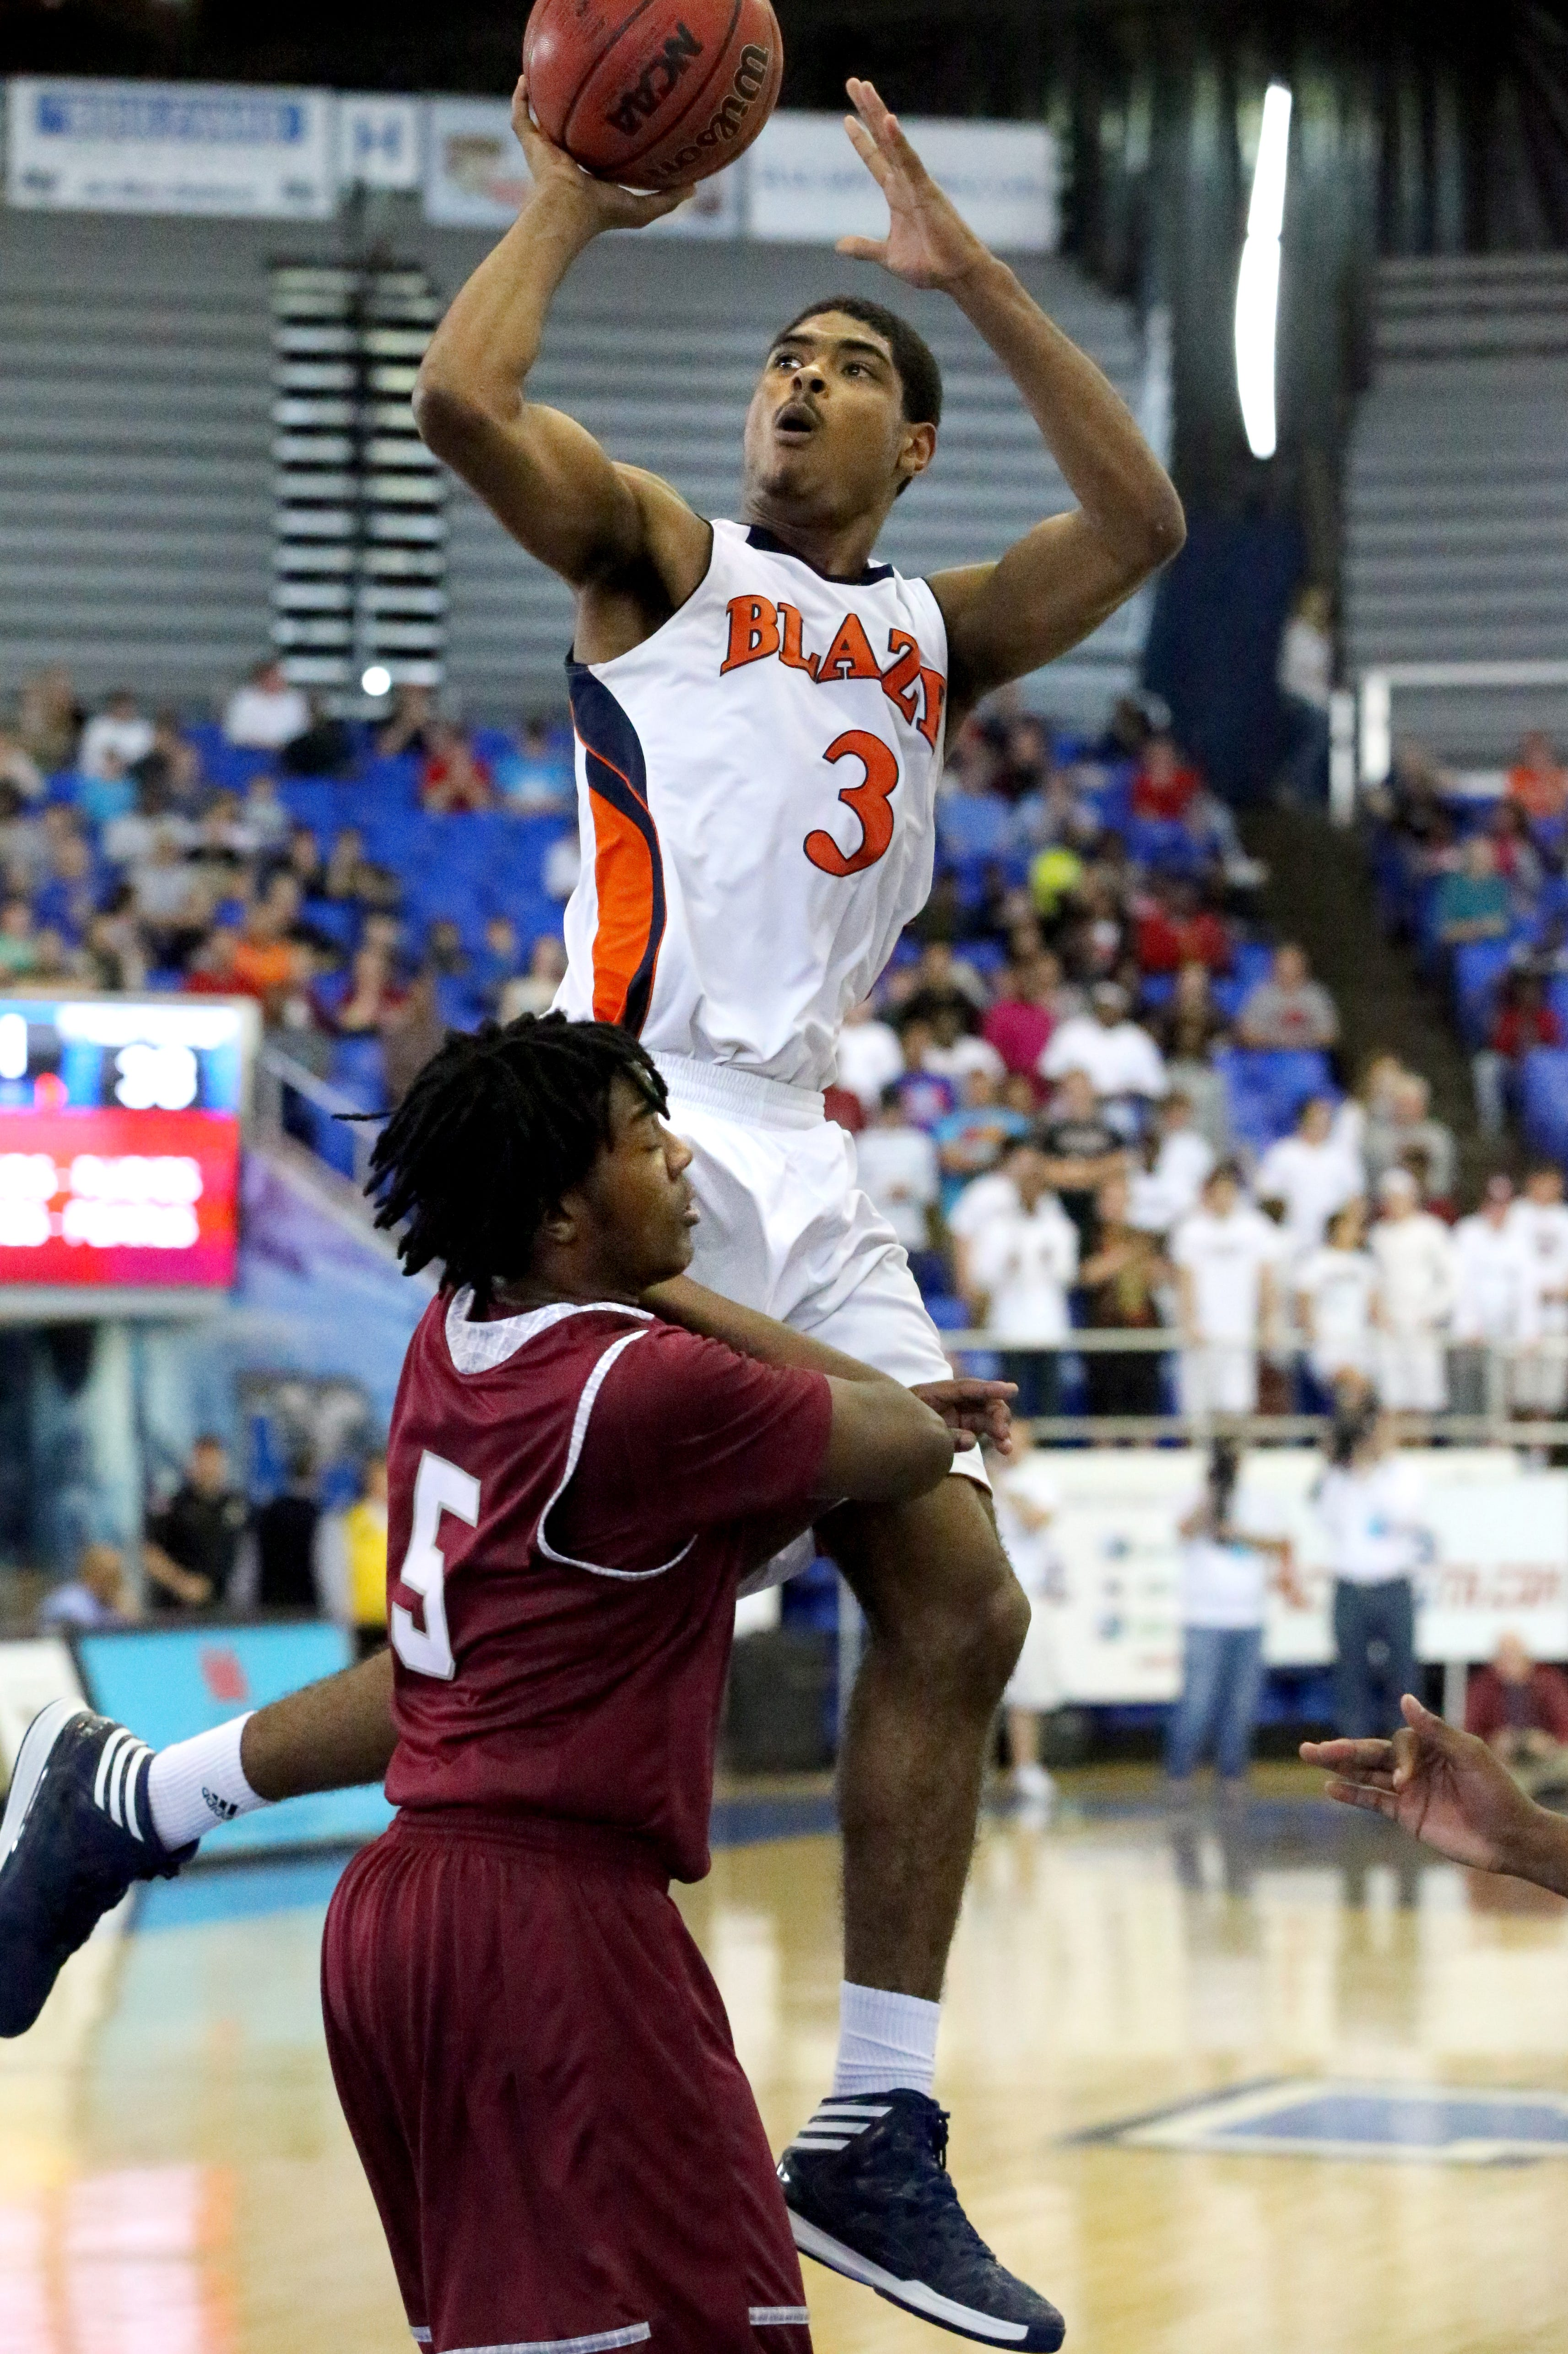 Blackman's Jauan Jennings has the potential to be a top-200 basketball player, his coach says.